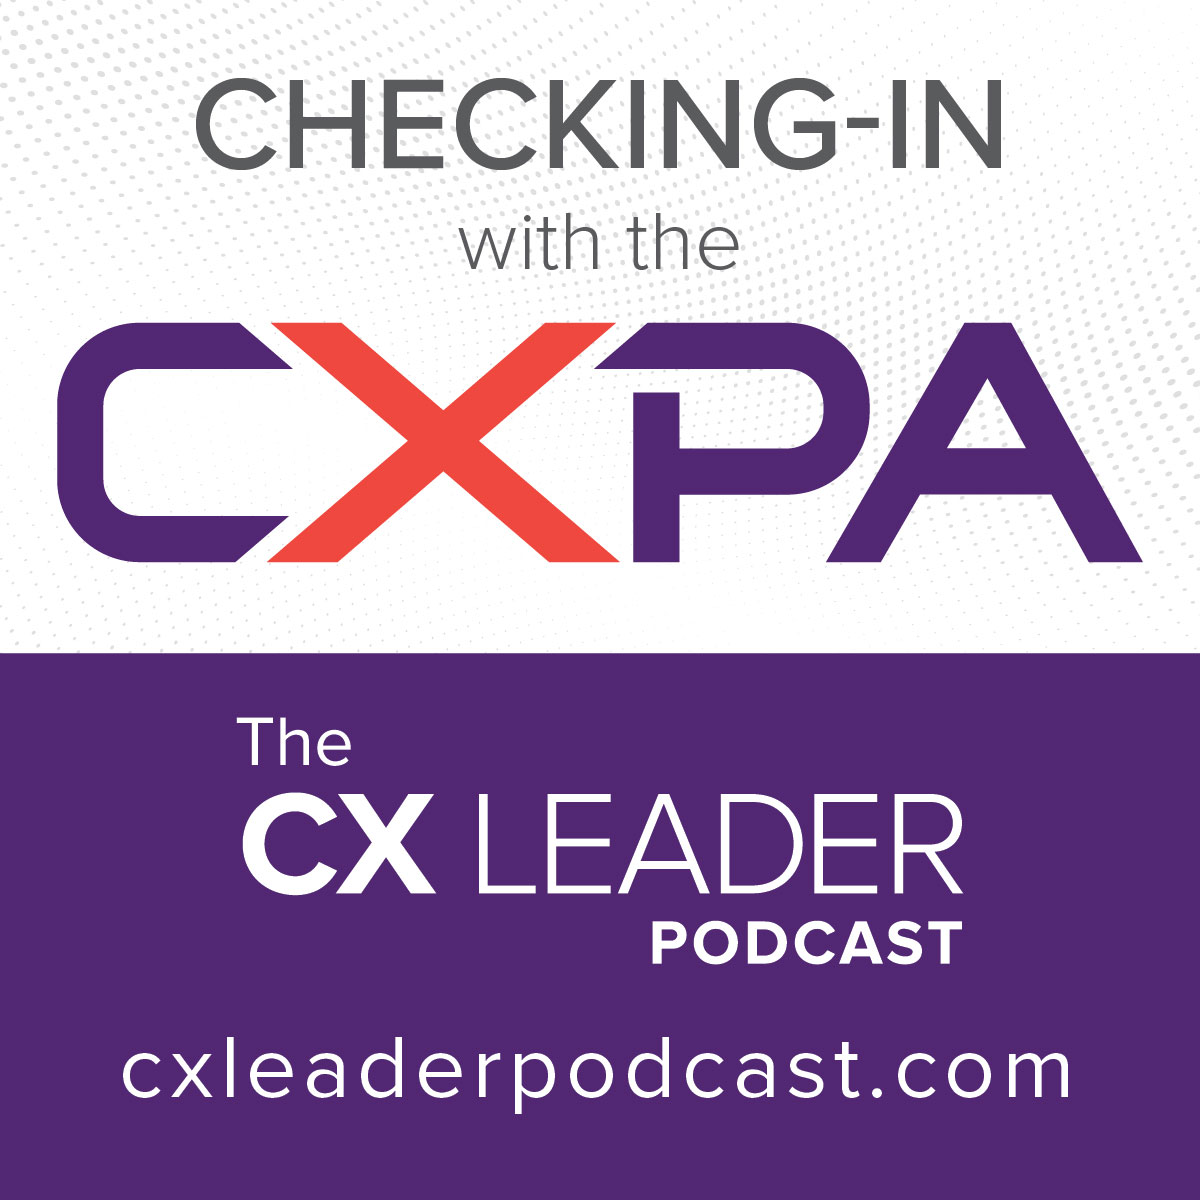 Checking In with the CXPA